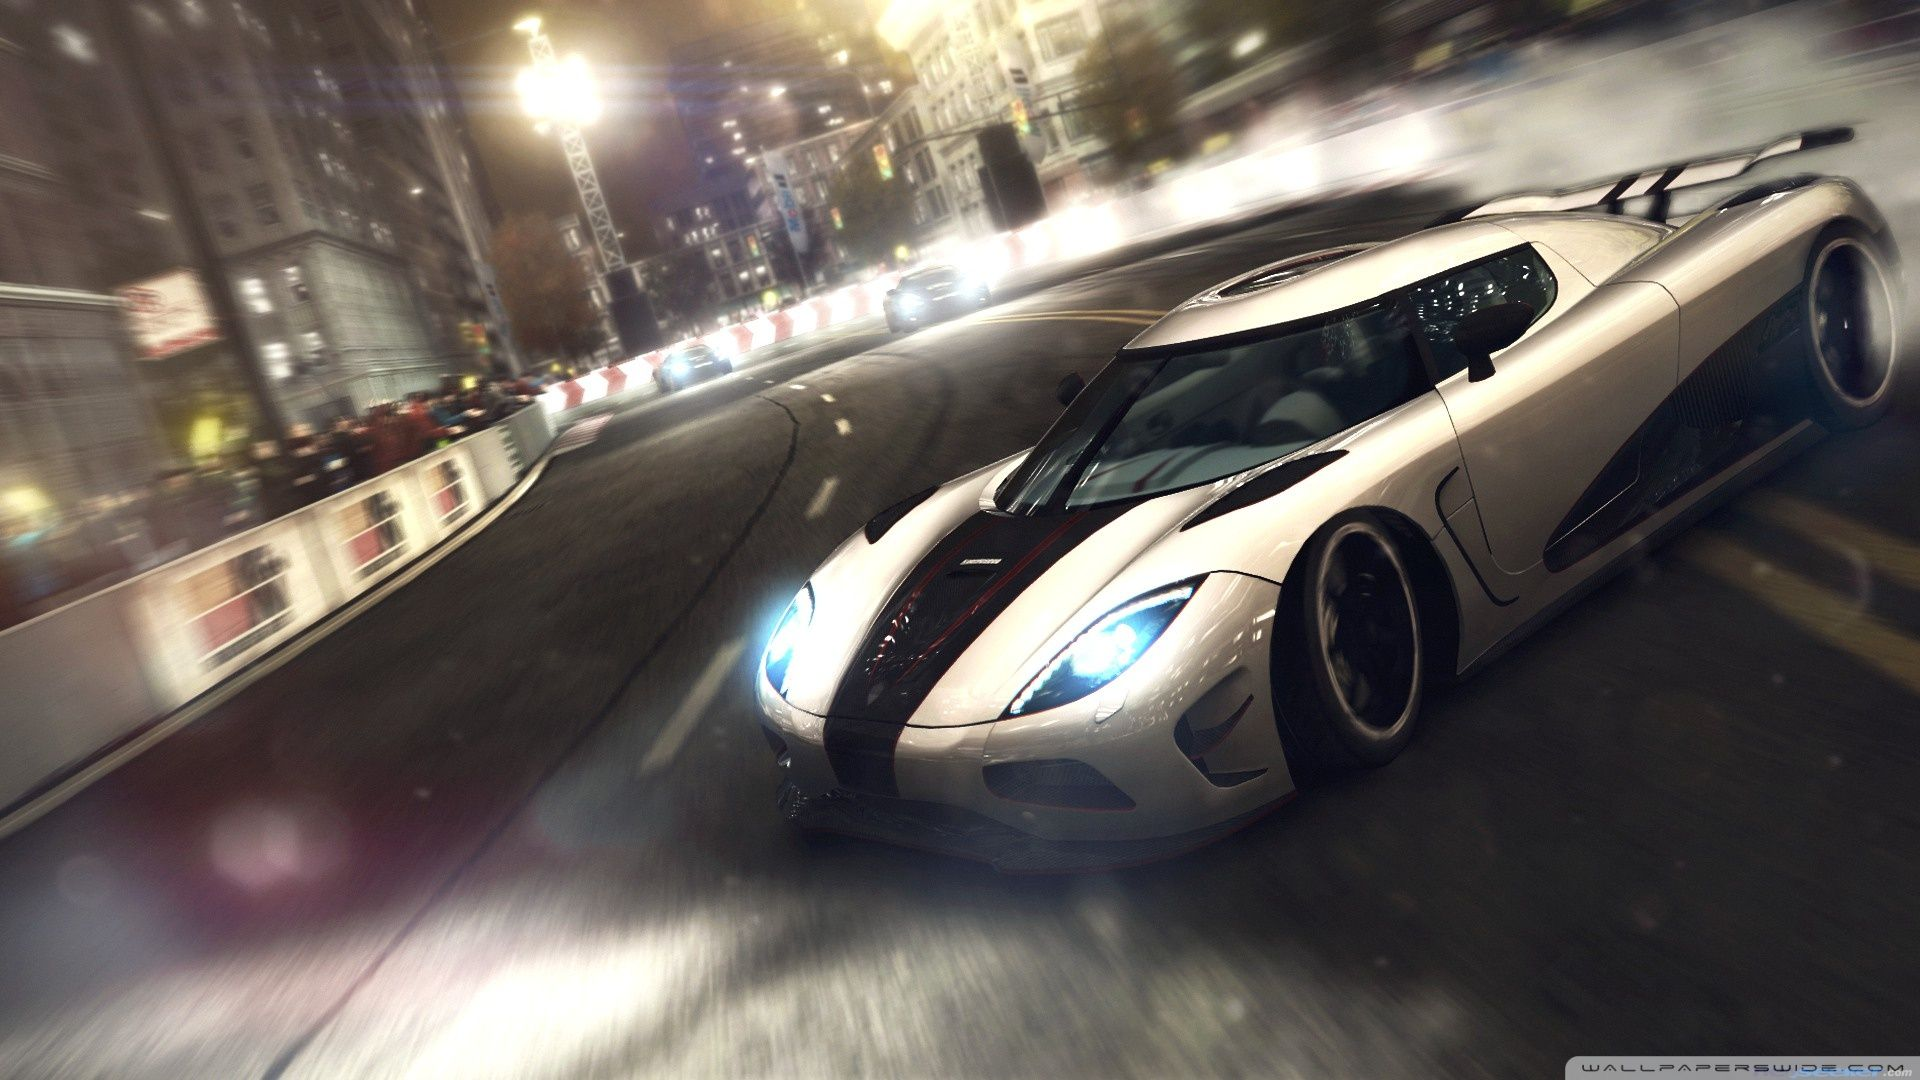 54 Best Free Koenigsegg Agera Wallpapers Wallpaperaccess